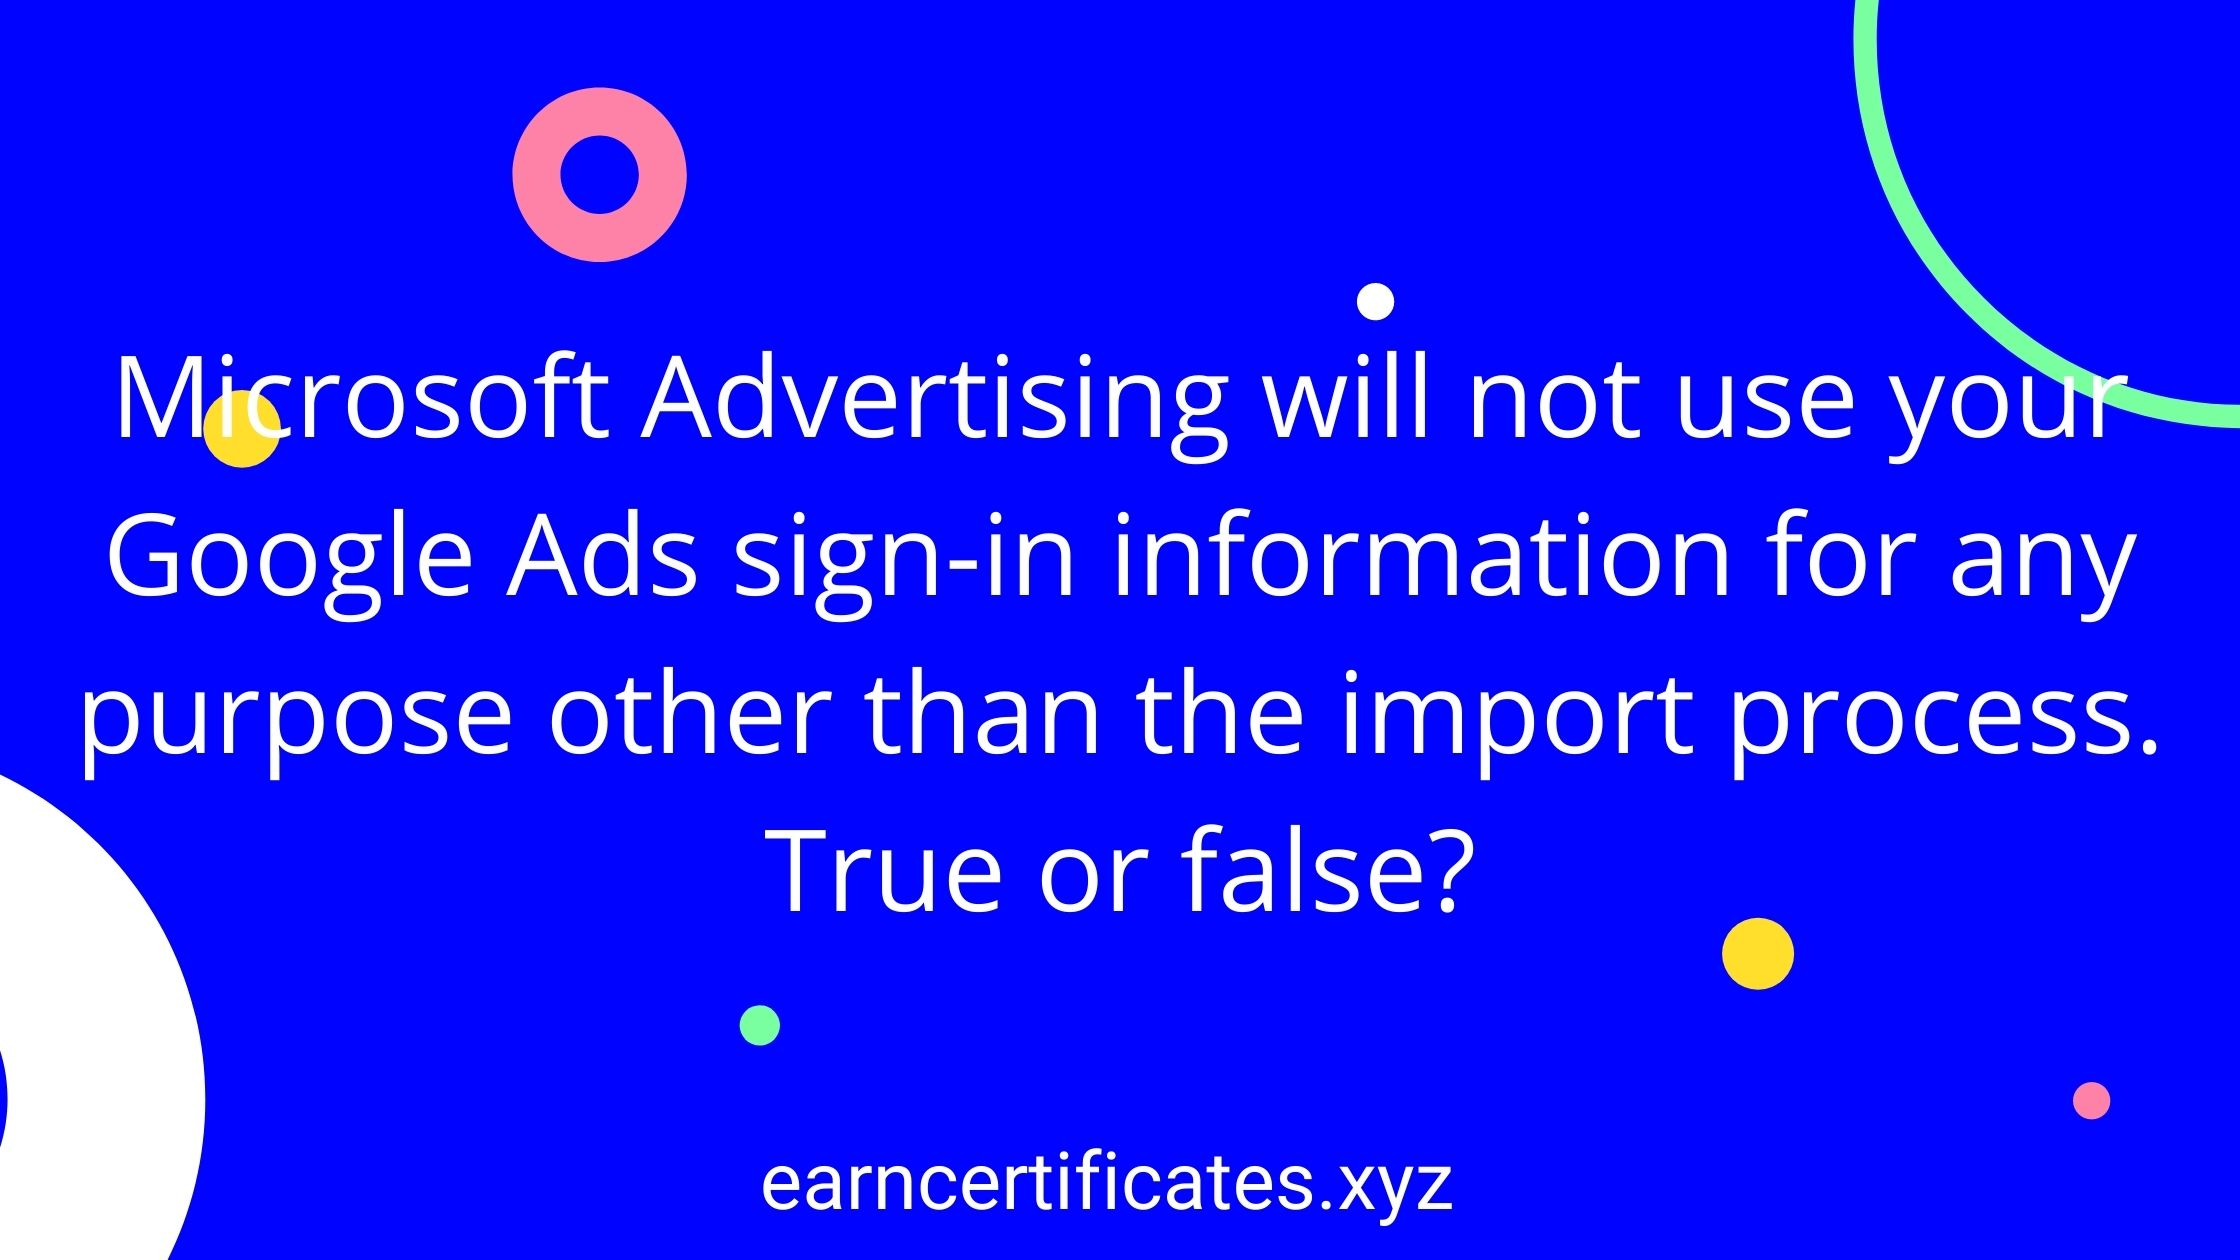 Microsoft Advertising will not use your Google Ads sign-in information for any purpose other than the import process. True or false?